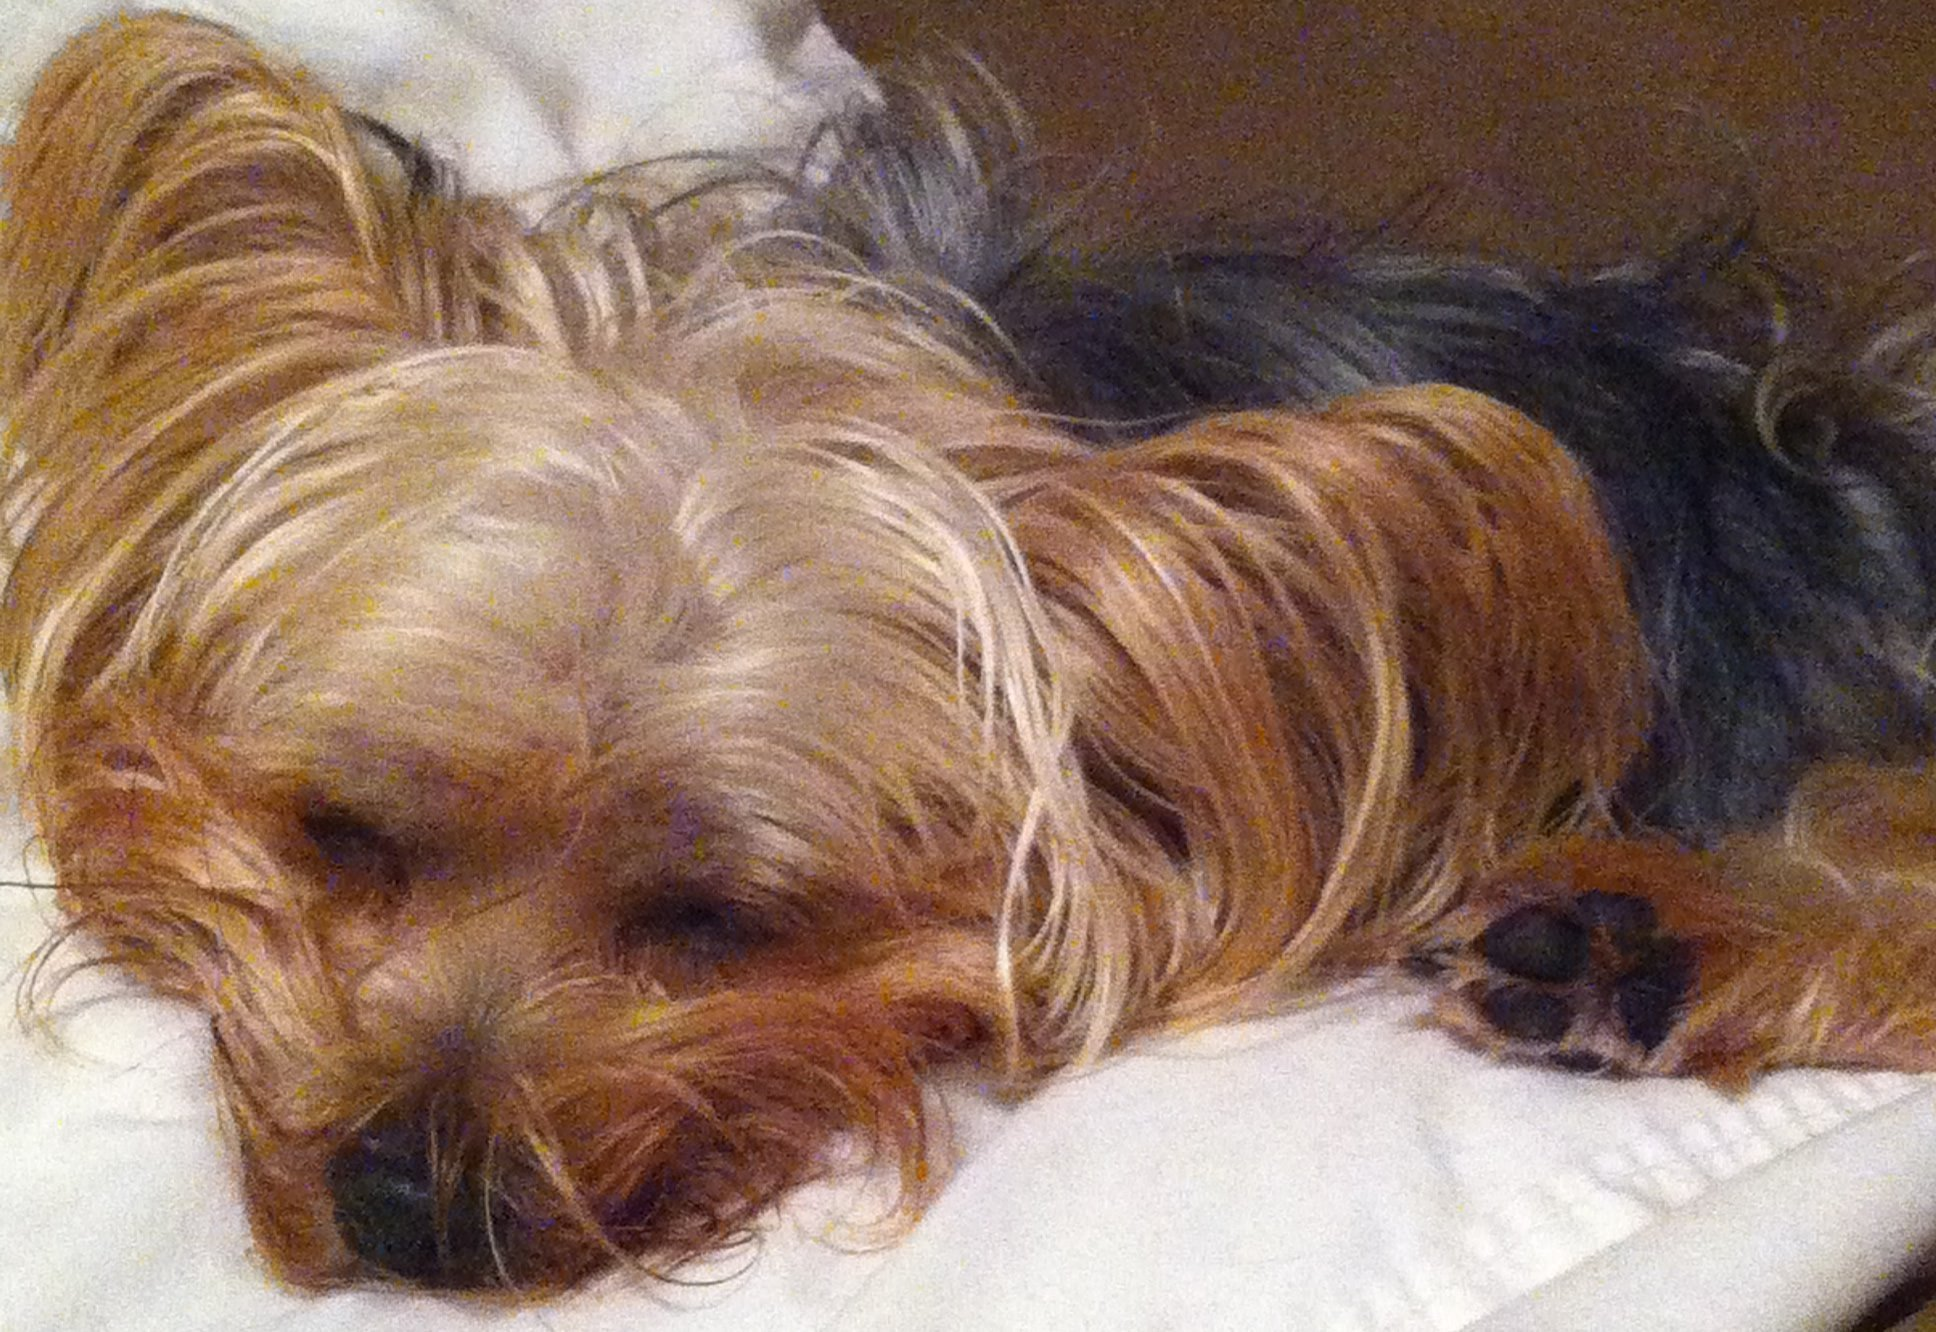 Flower Essences in Alert Saves Family Pet – Our Yorkie Poo Bella!